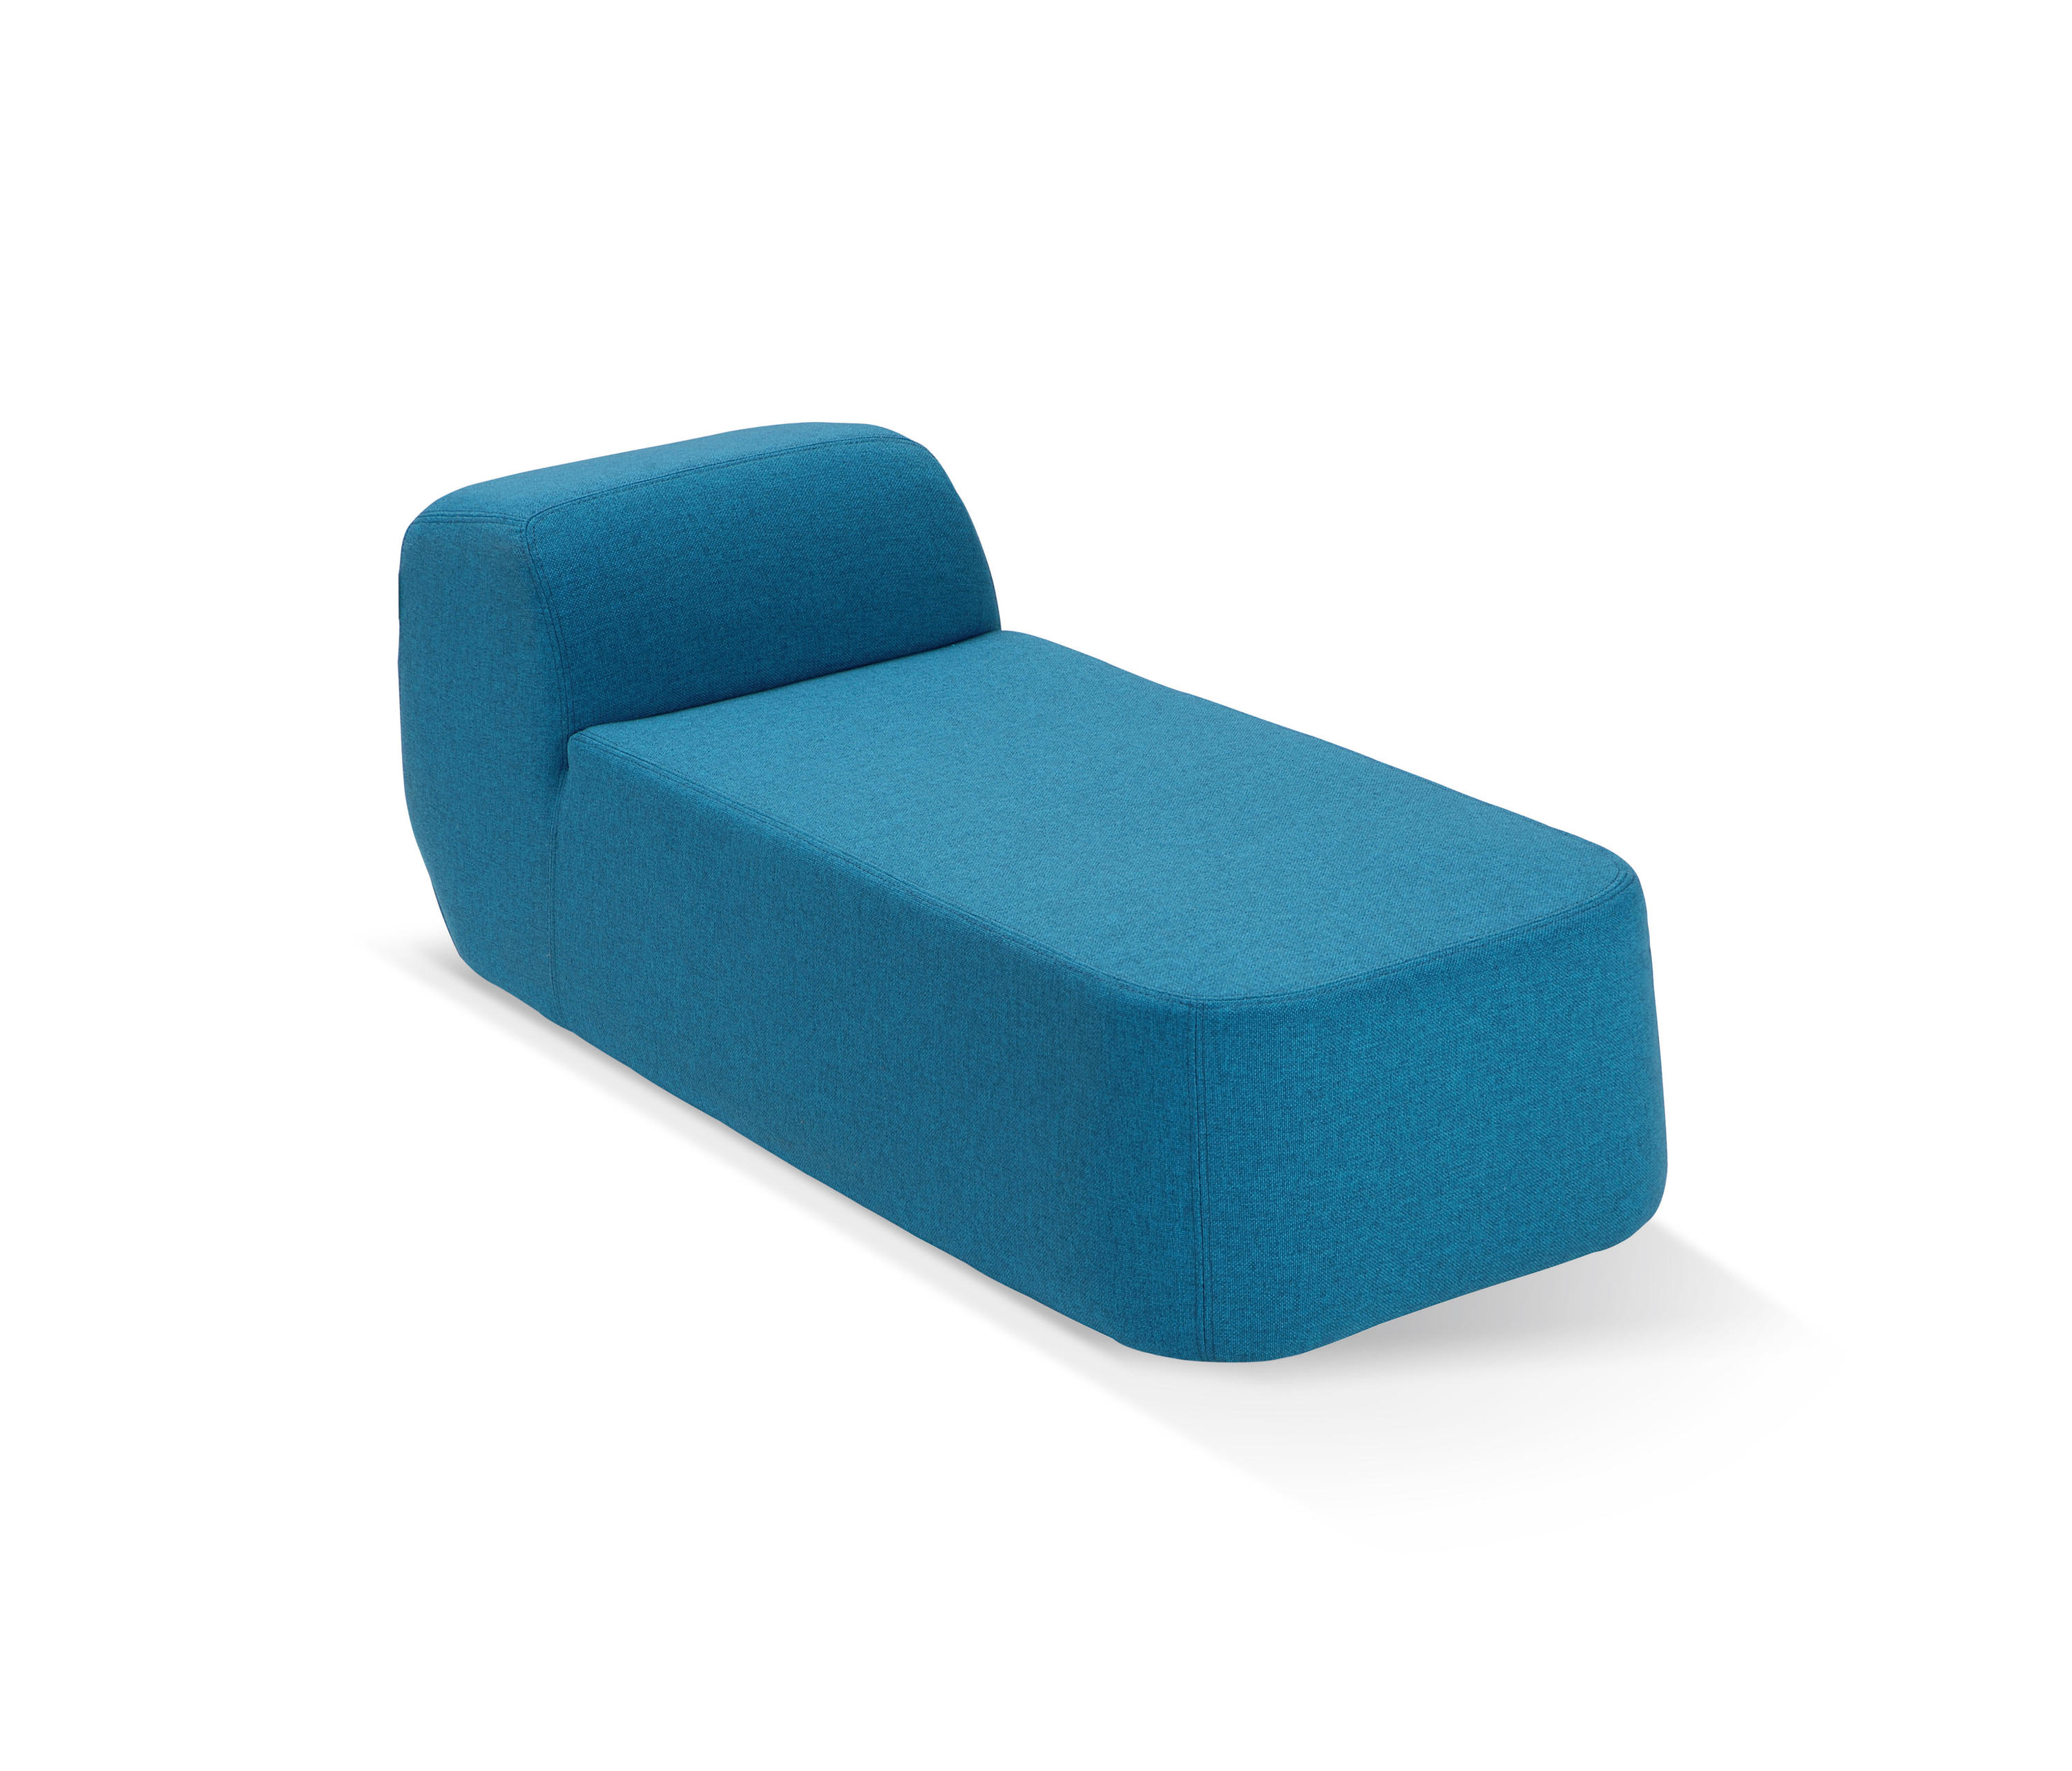 Nuda Baby Kids Armchairs Sofas From Adrenalina Architonic - Baby-collection-by-adrenalina